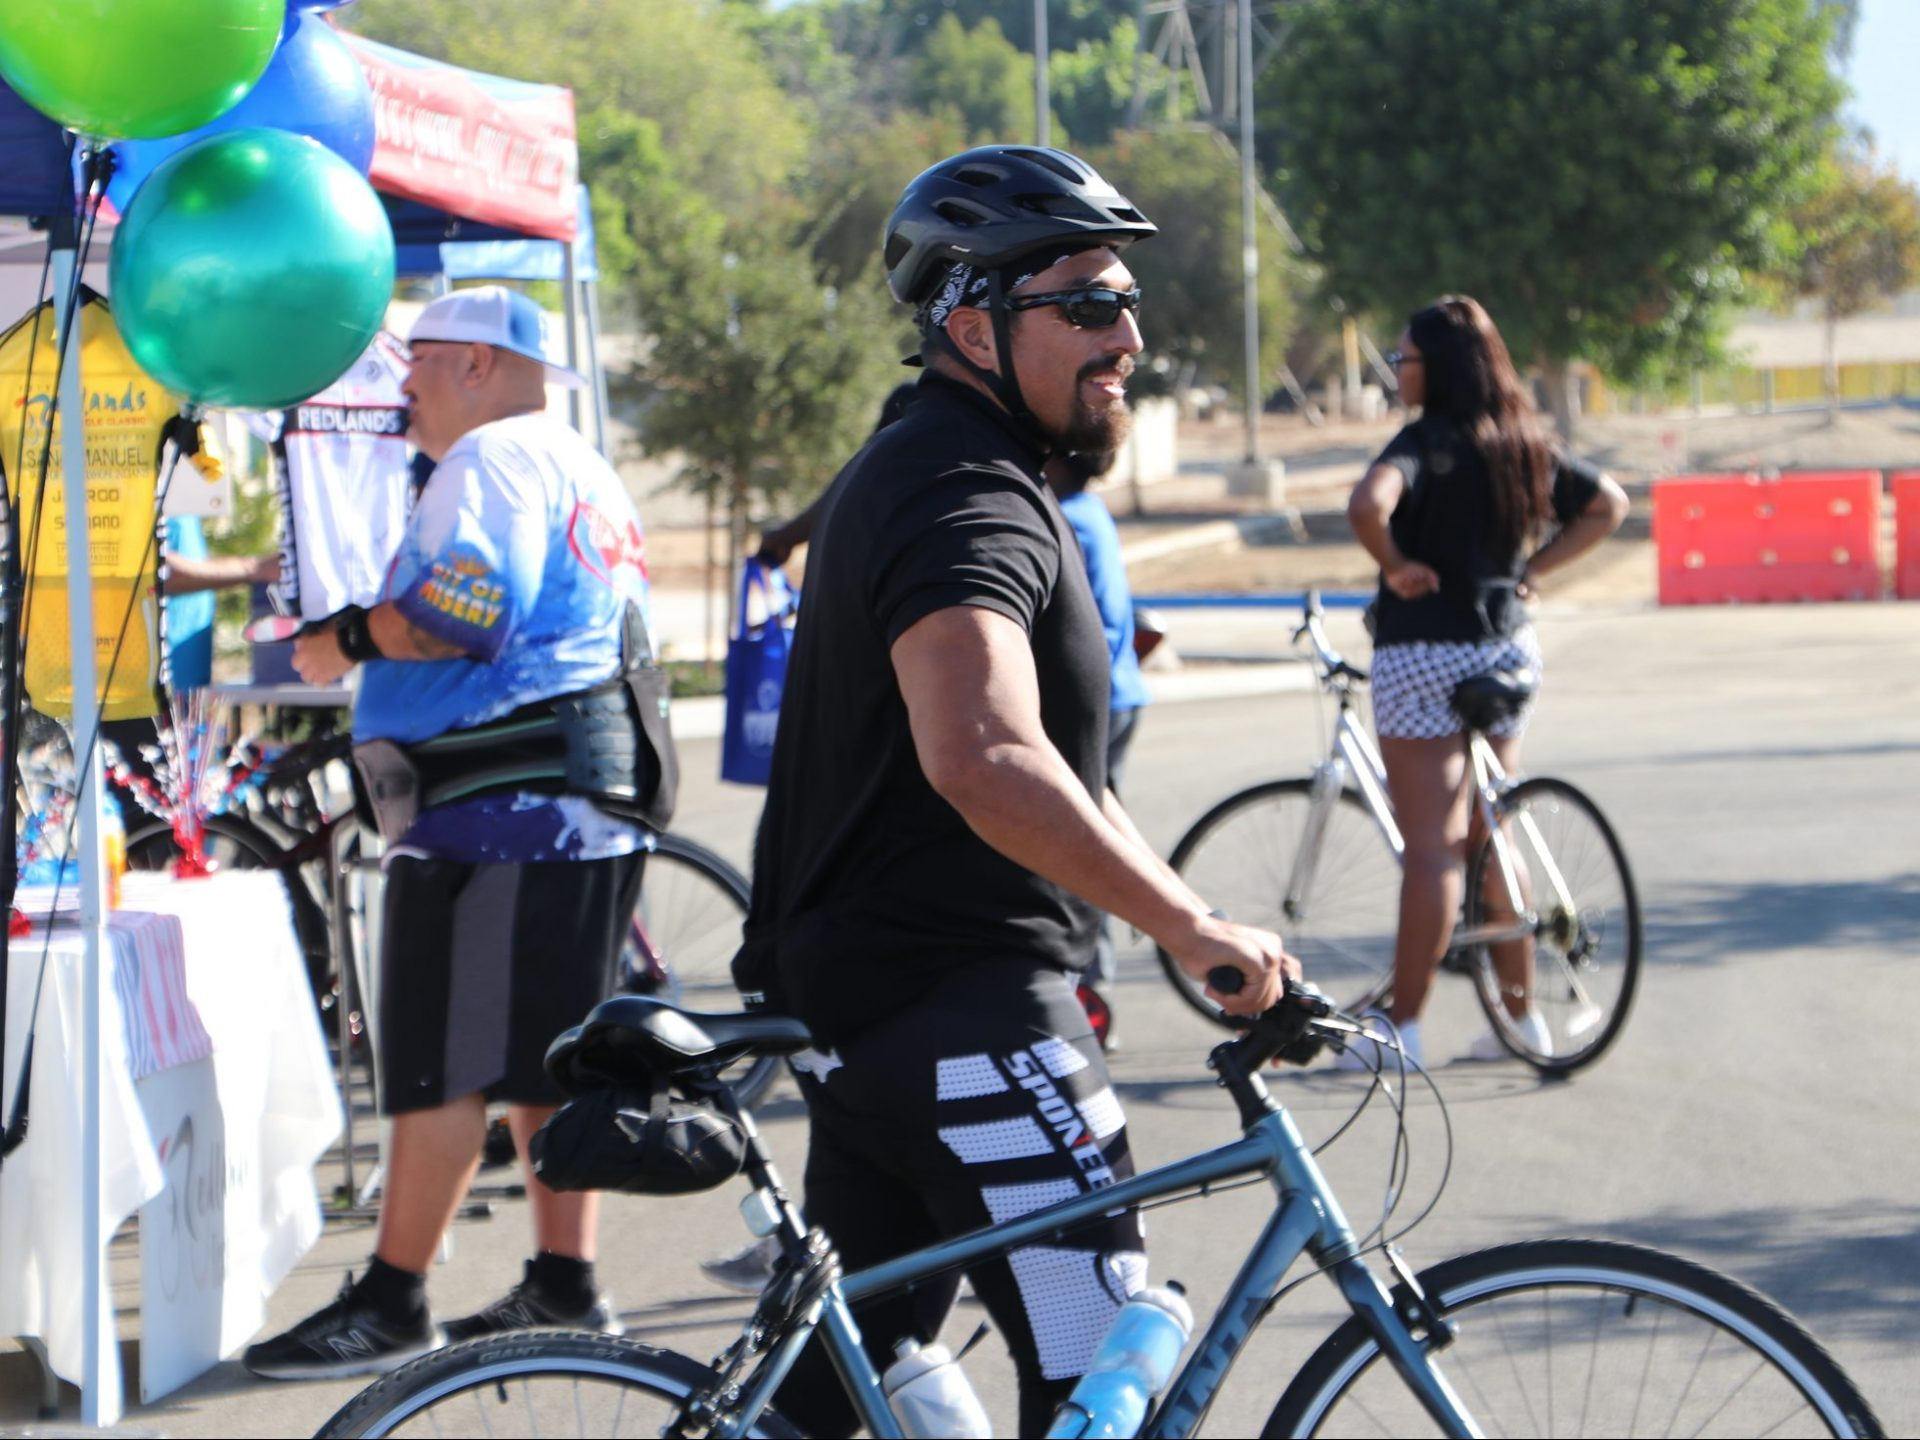 Man holding bike at event